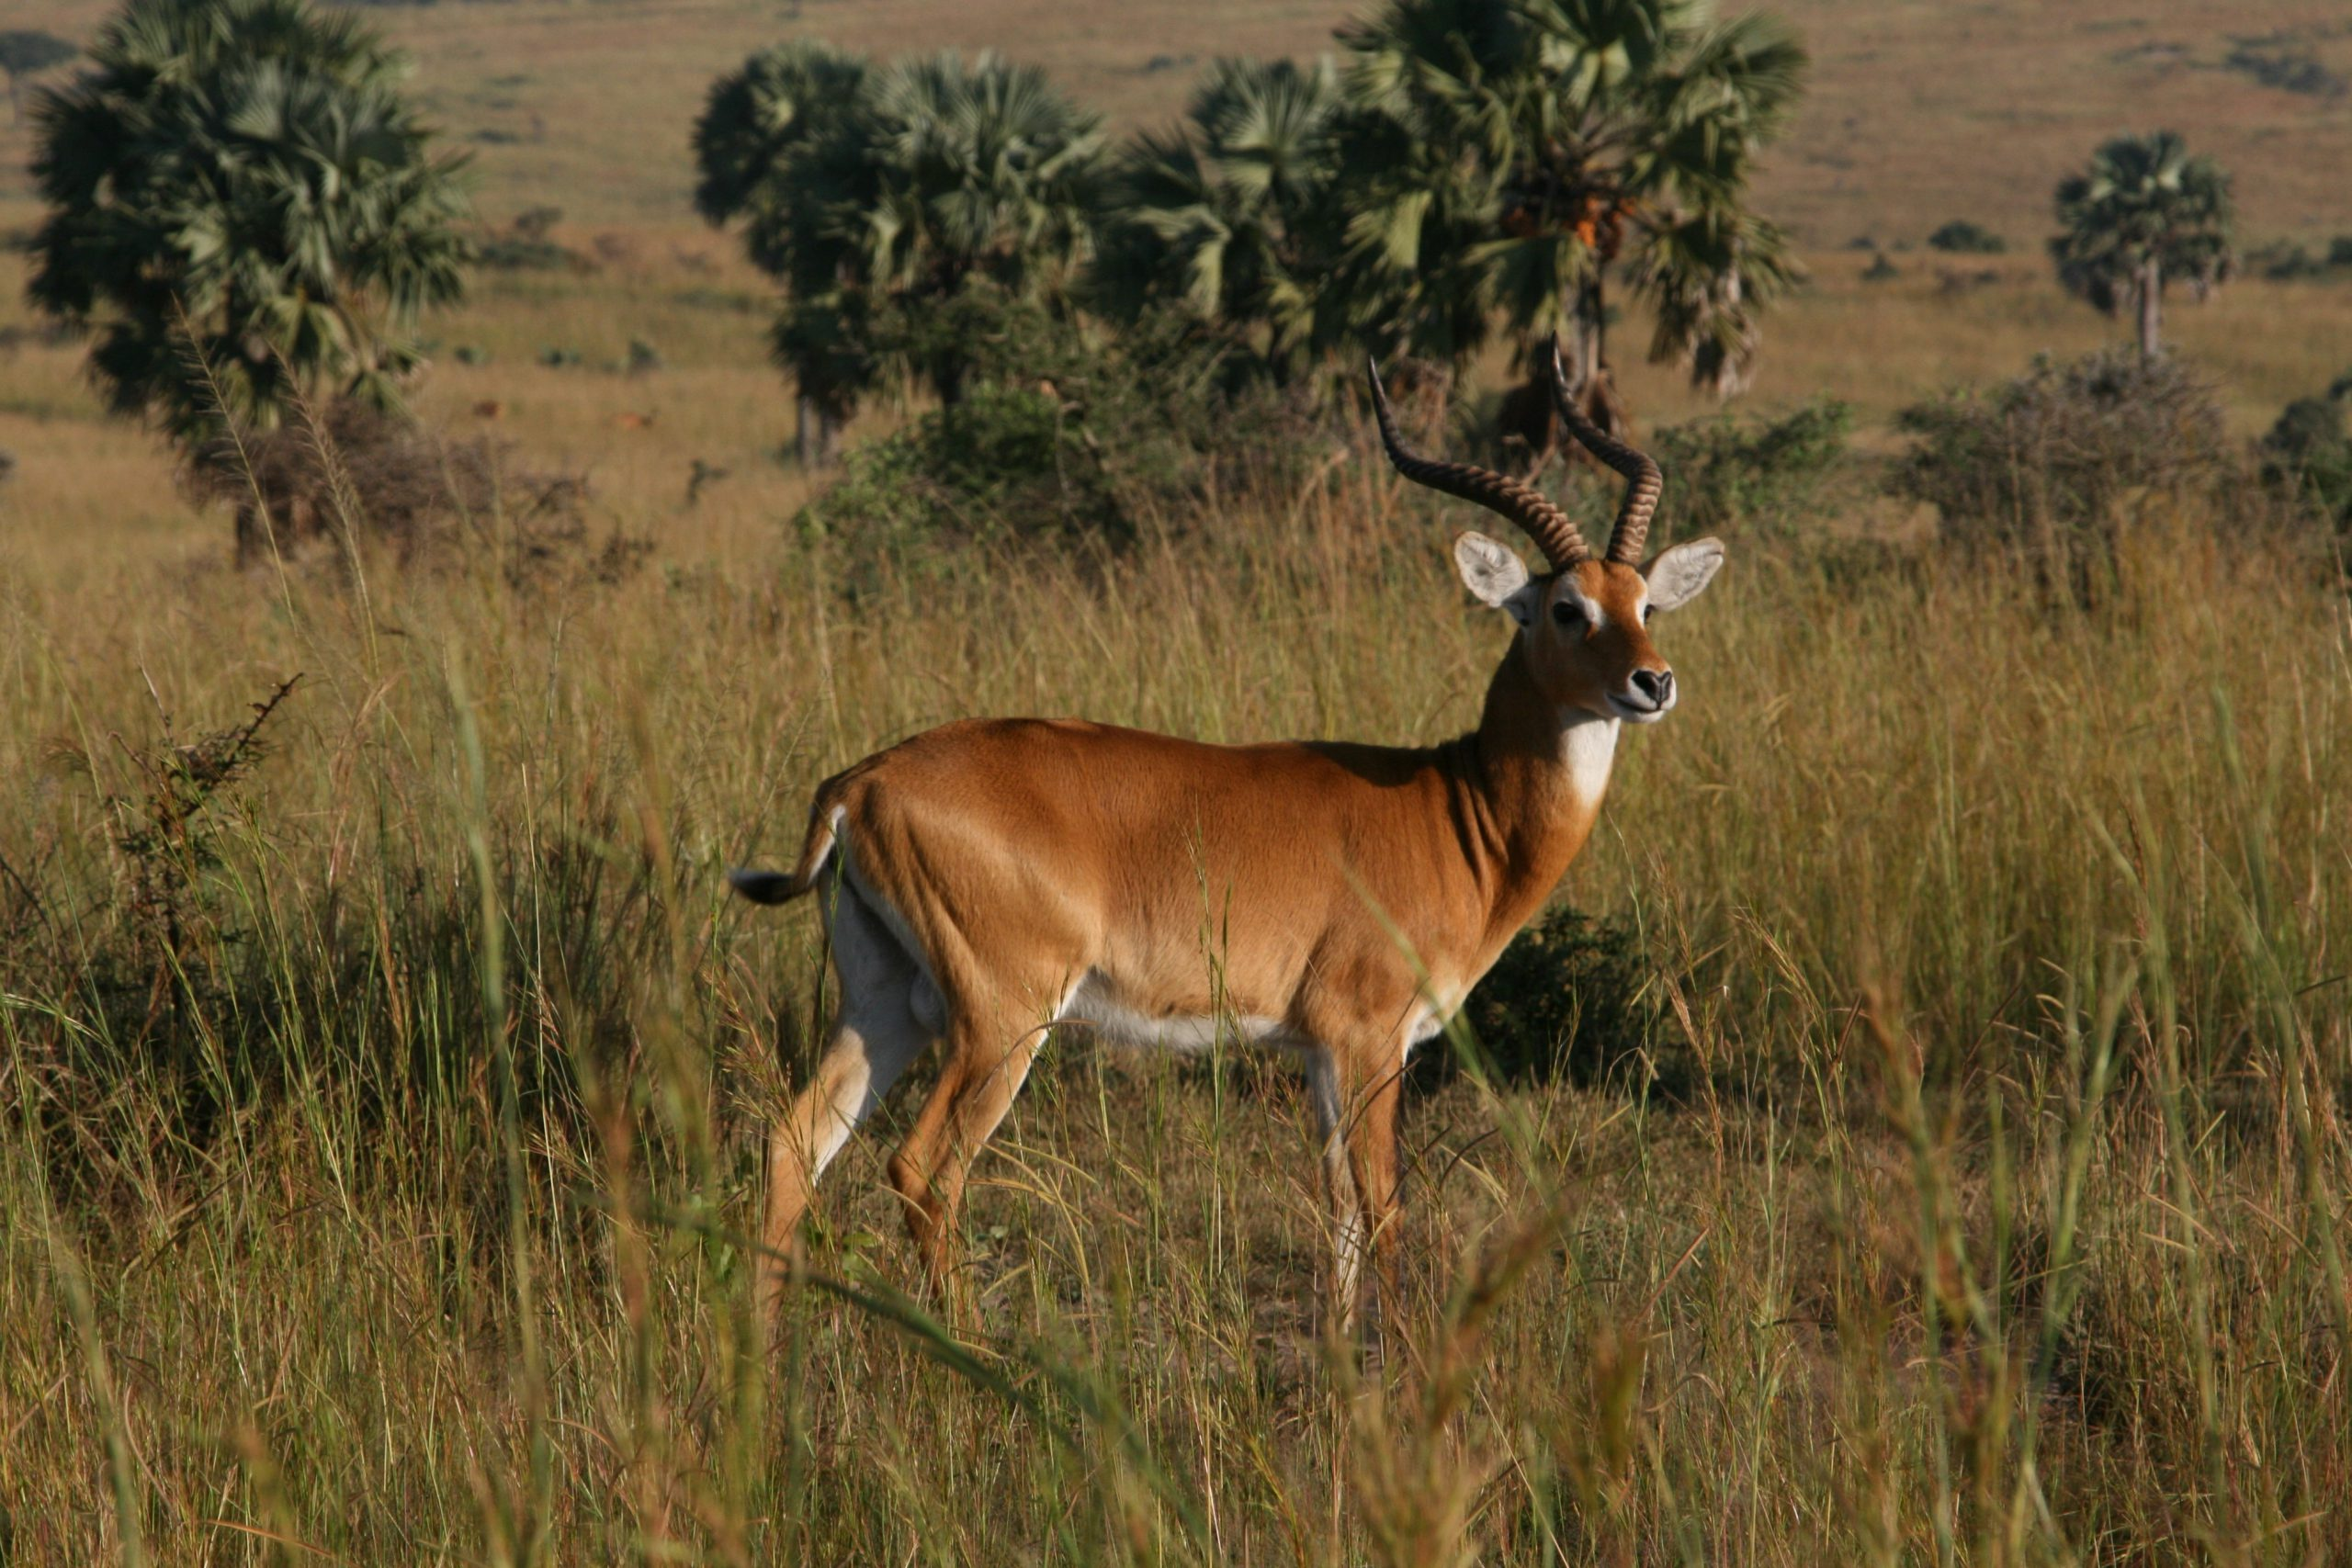 school_expedition_uganda_trek_impala_on_safari